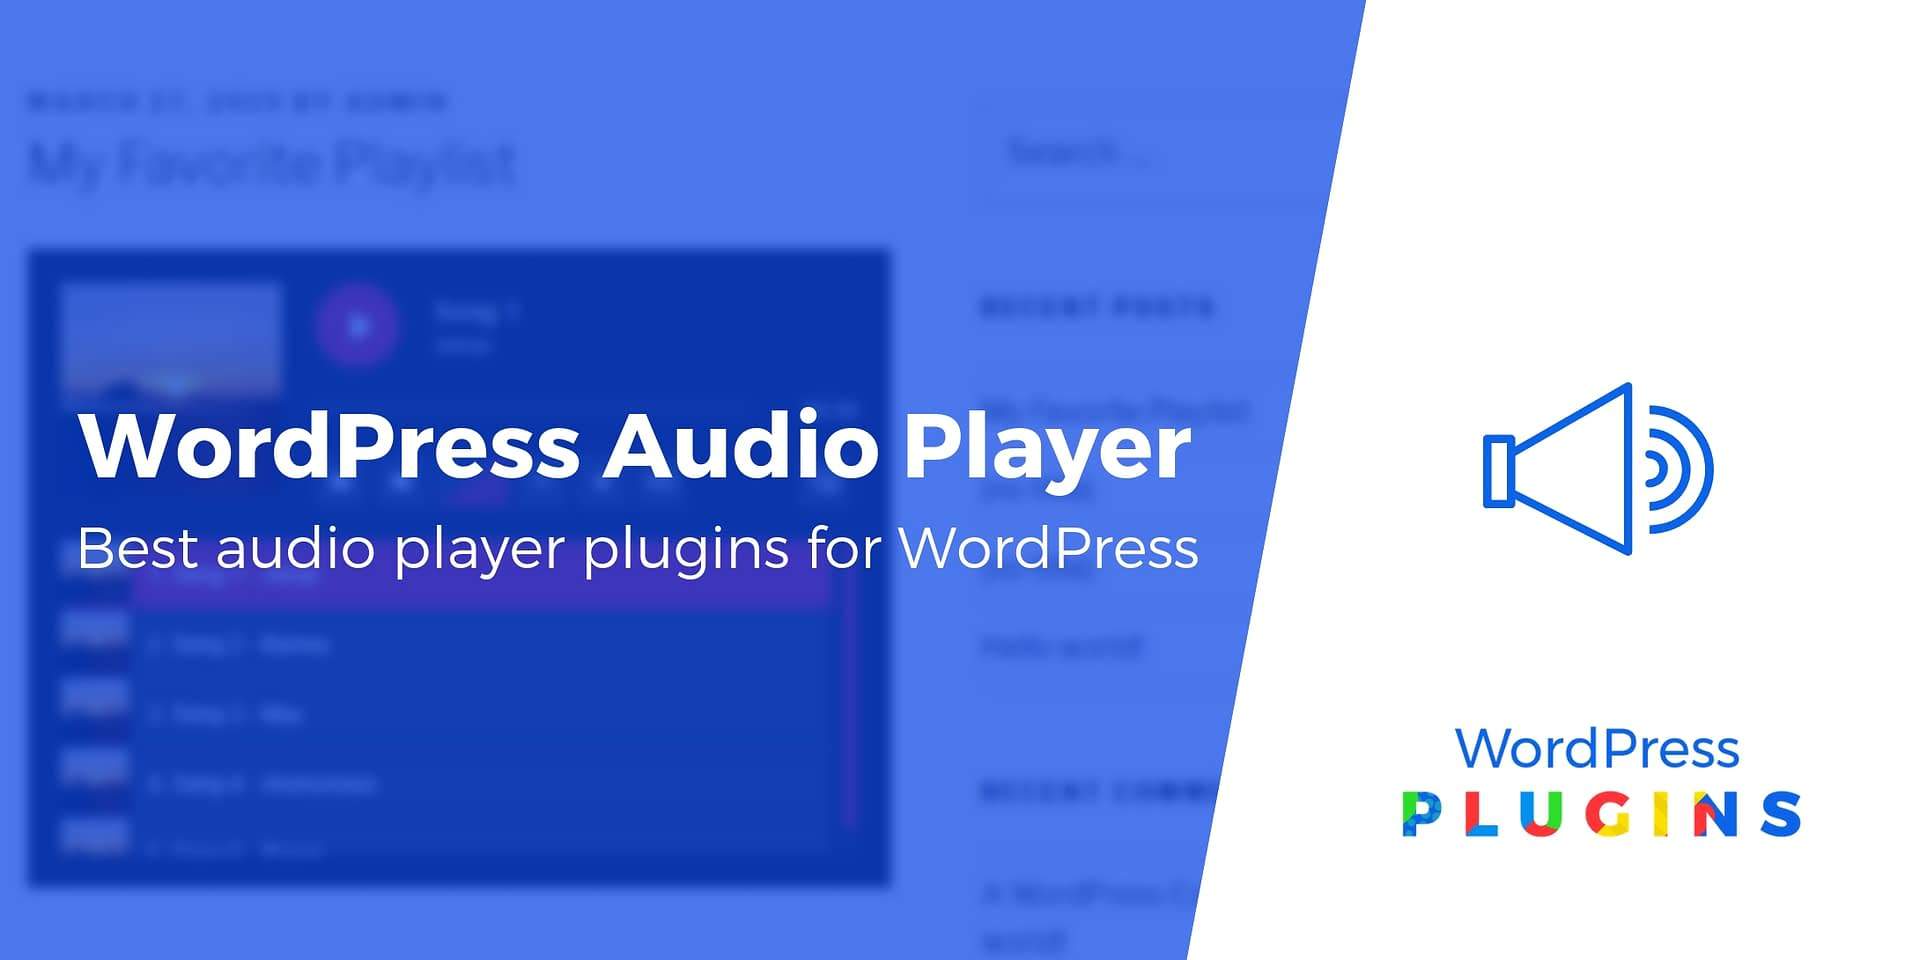 Best Audio Player 2019 6 of the Best WordPress Audio Player Plugins Compared in 2019